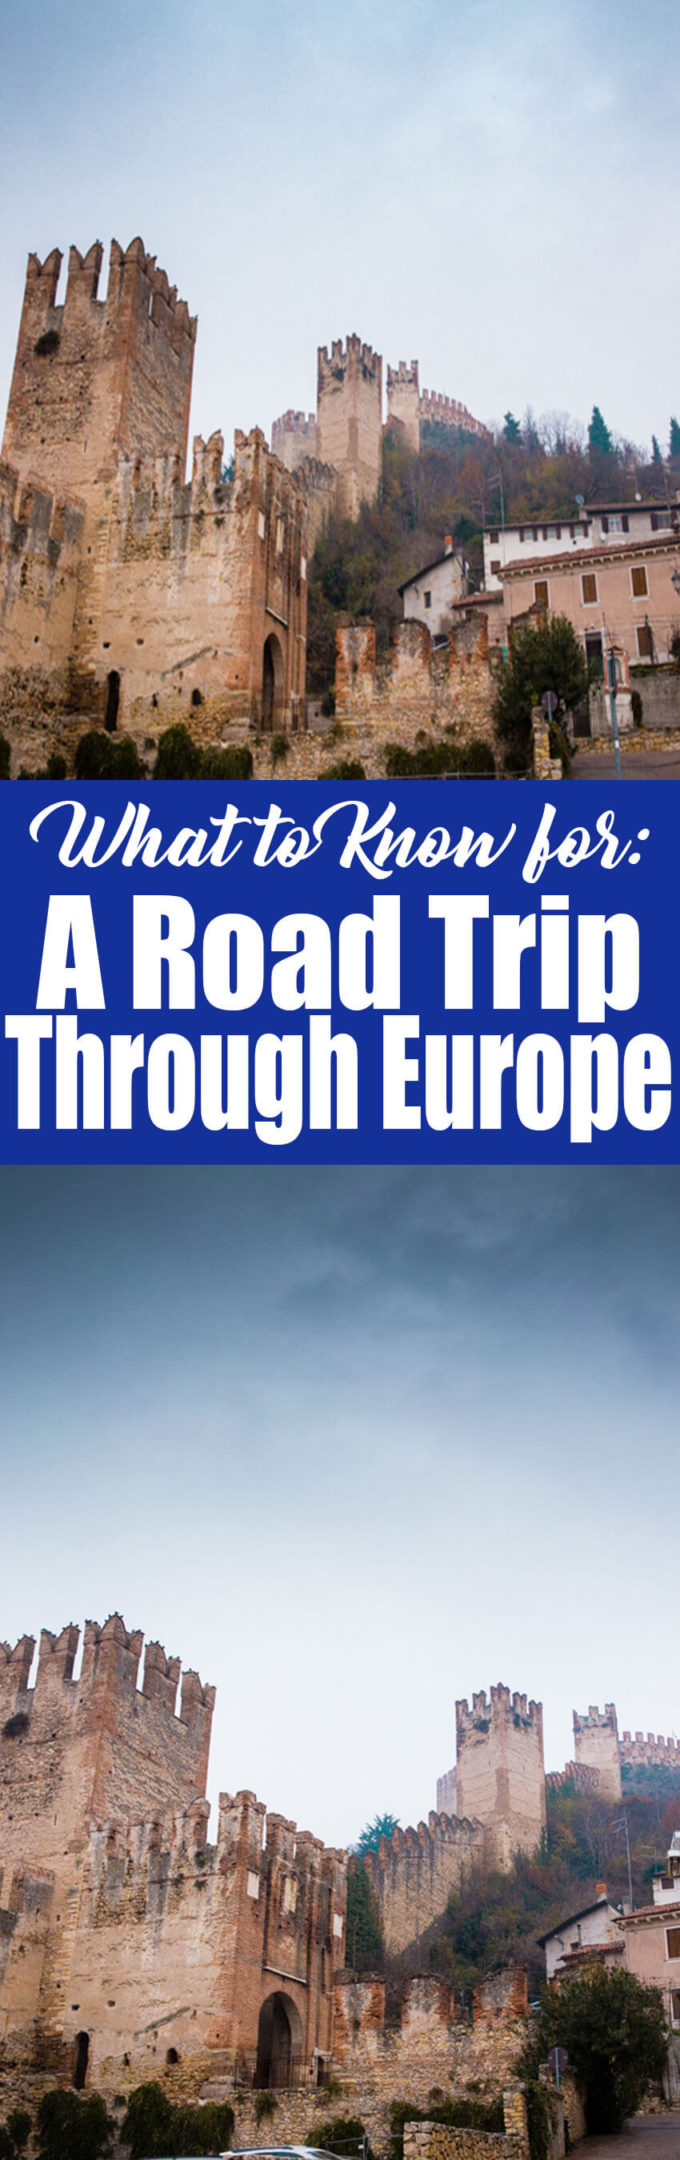 Everything you need to know to have an amazing European road trip